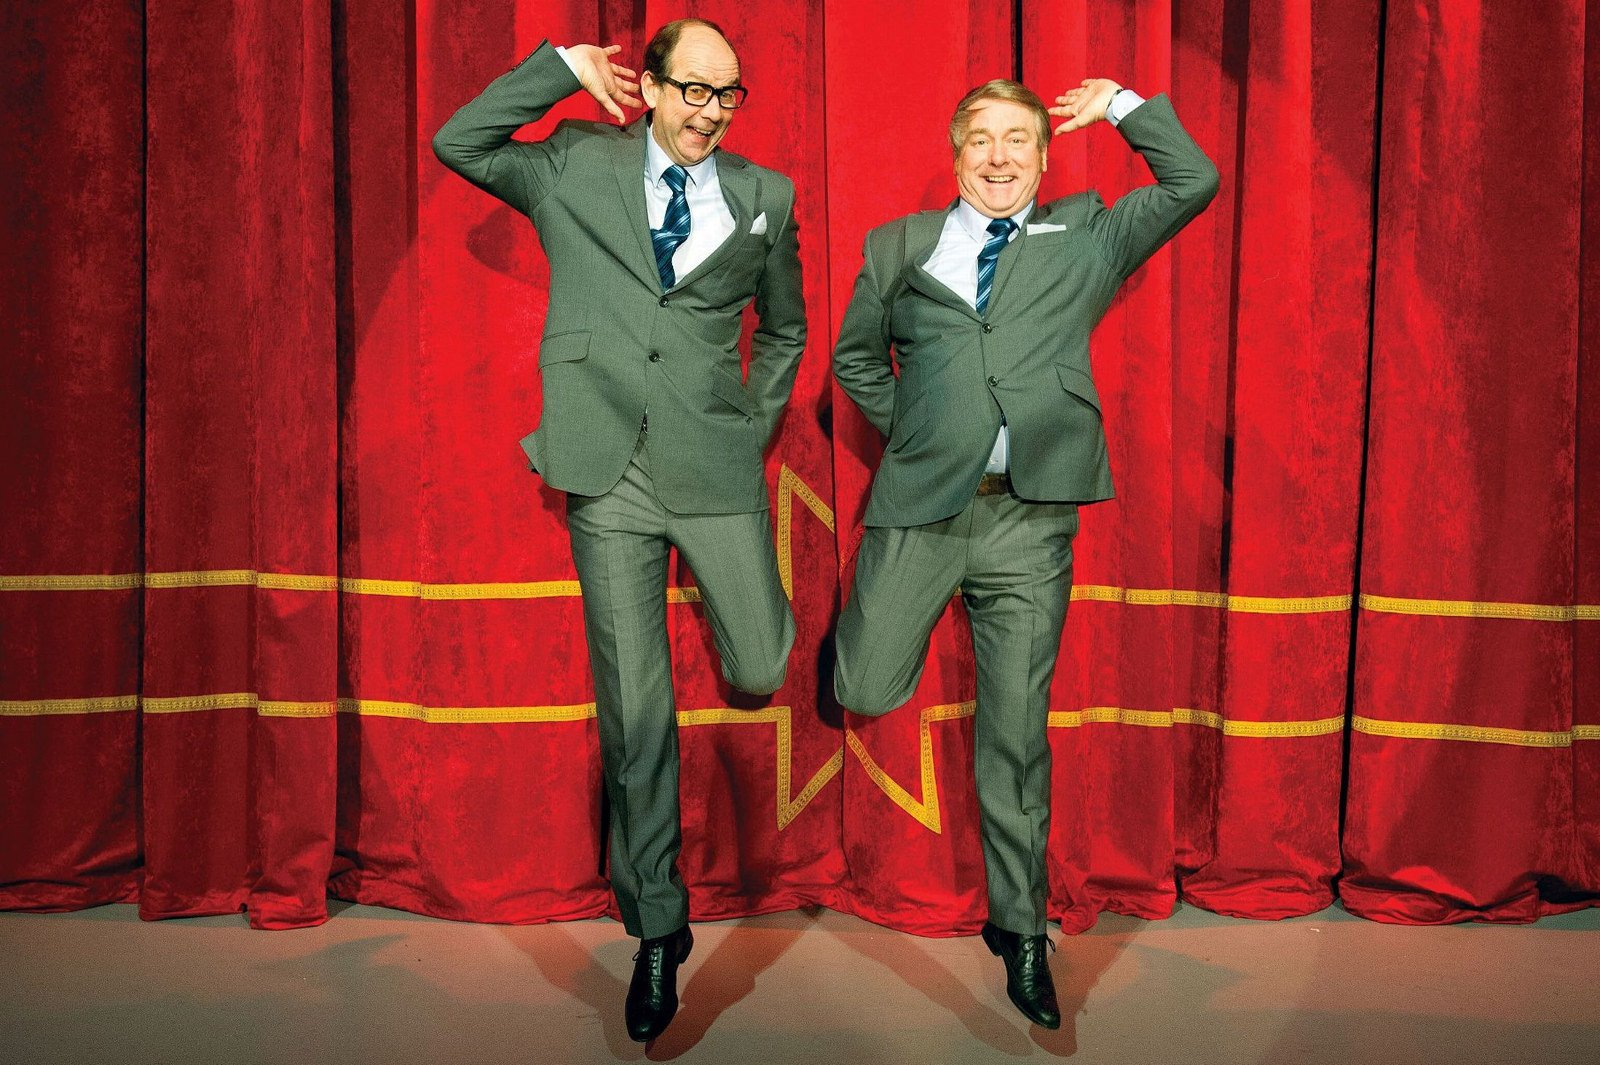 Evening with Eric & Ern